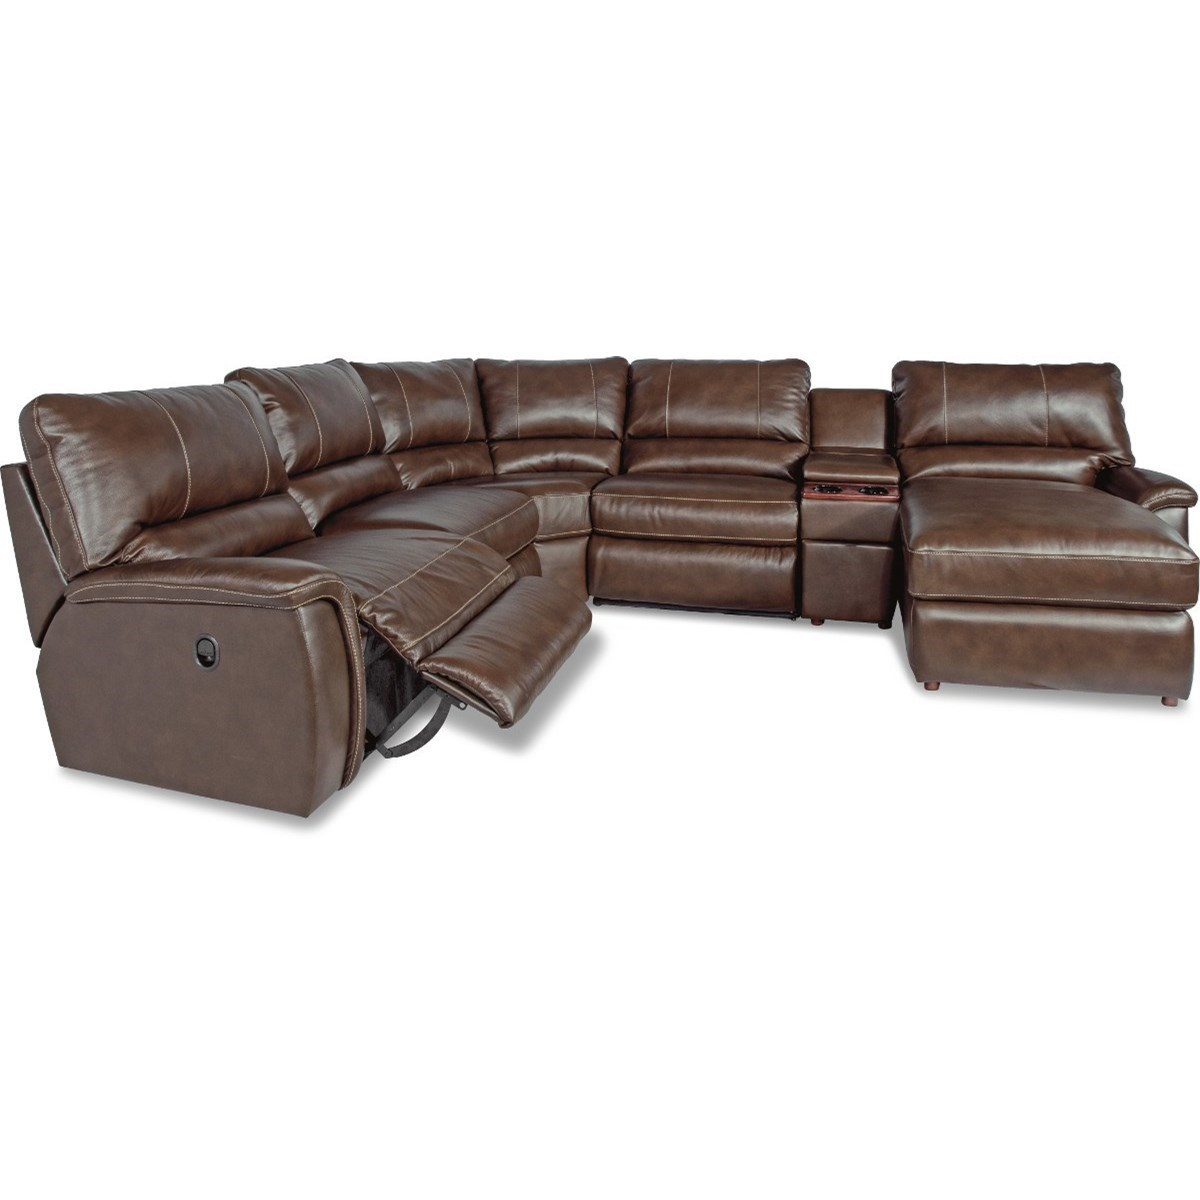 La Z Boy Aspen Six Piece Reclining Sectional Sofa With Right Arm Chaise And Cupholders Conlin S Furniture Reclining Sectional Sofas